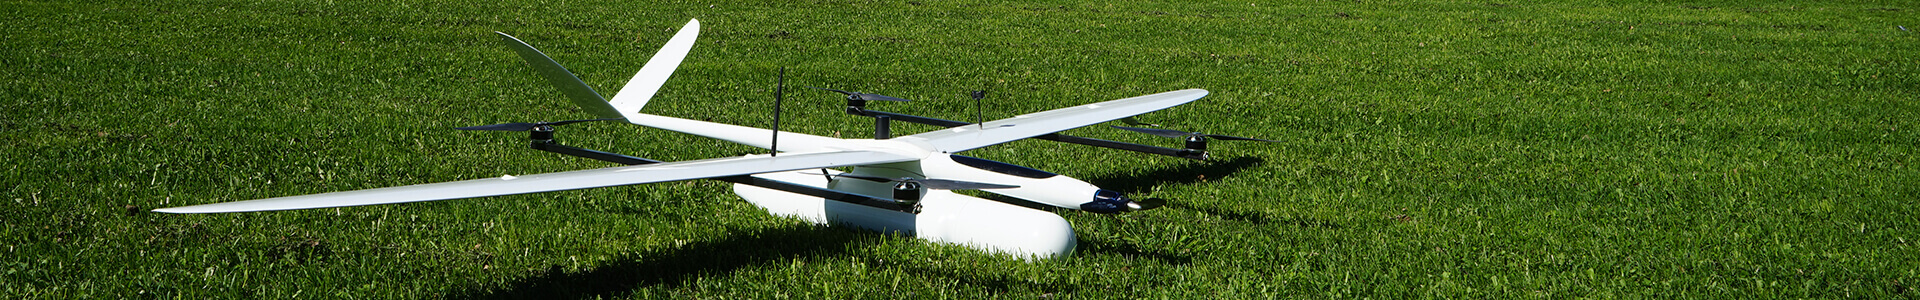 The picture shows a UAV in the grass